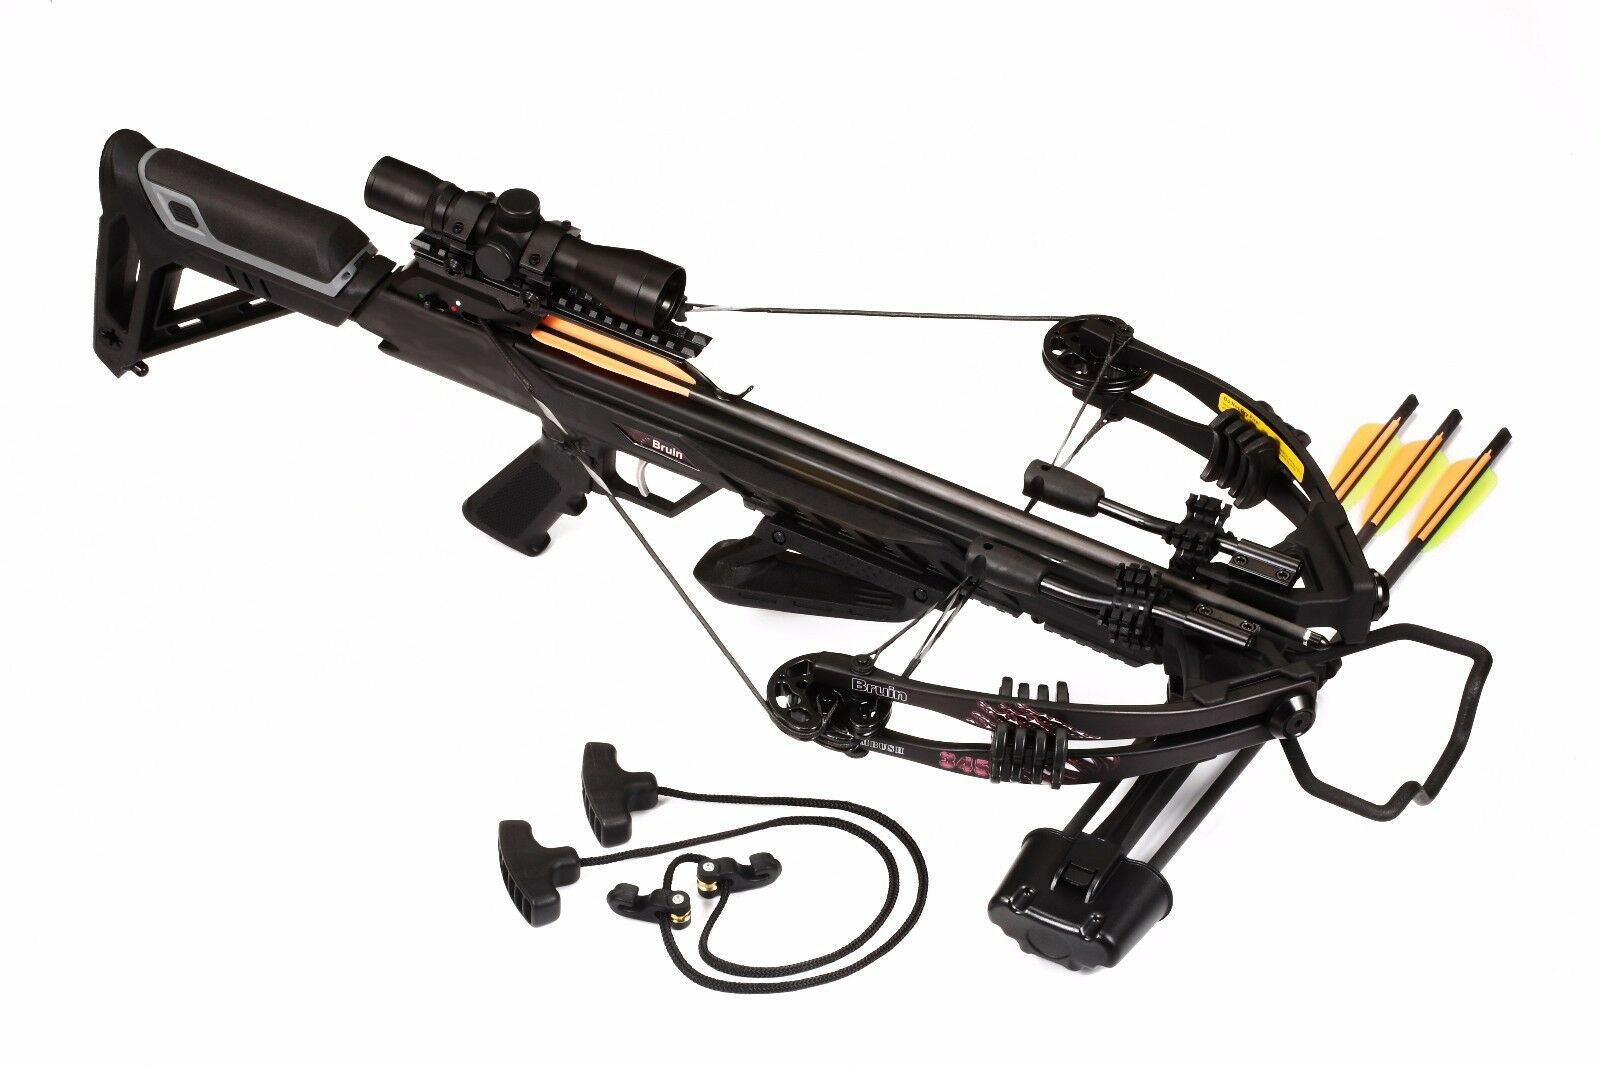 Bruin Ambush 345 Crossbow Package w/ Scope, Bolts, Quiver and Cocking Rope